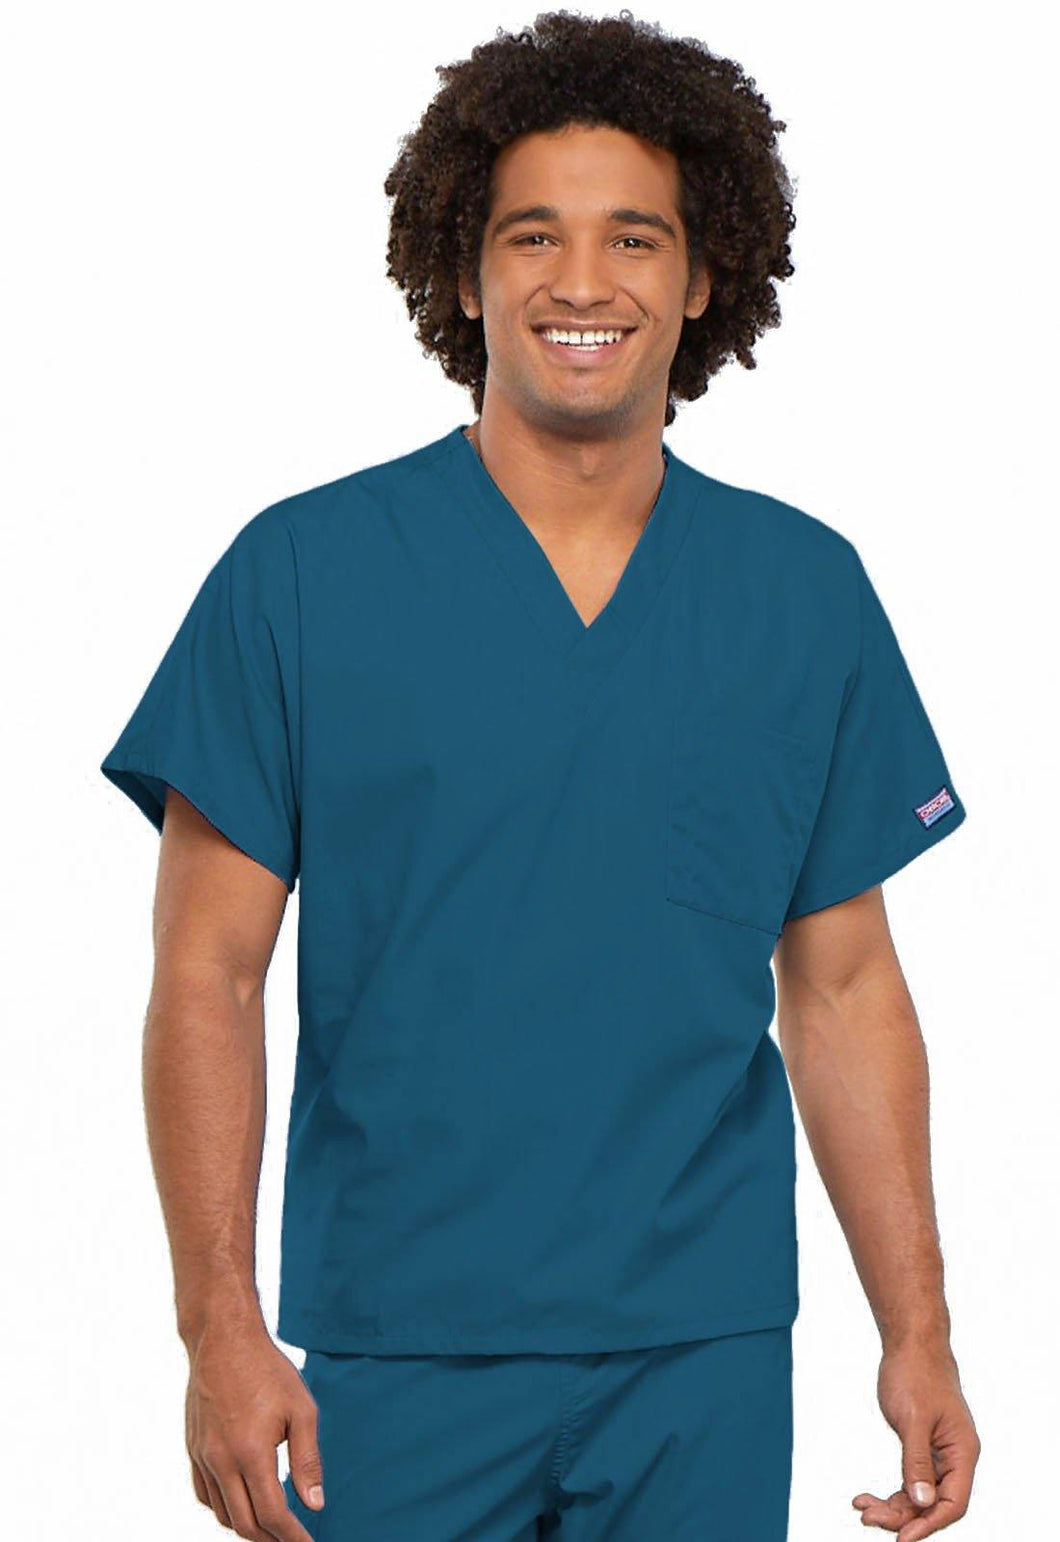 Cherokee WorkWear Originals Unisex V-Neck Tunic in Caribbean - Scrubsnmed